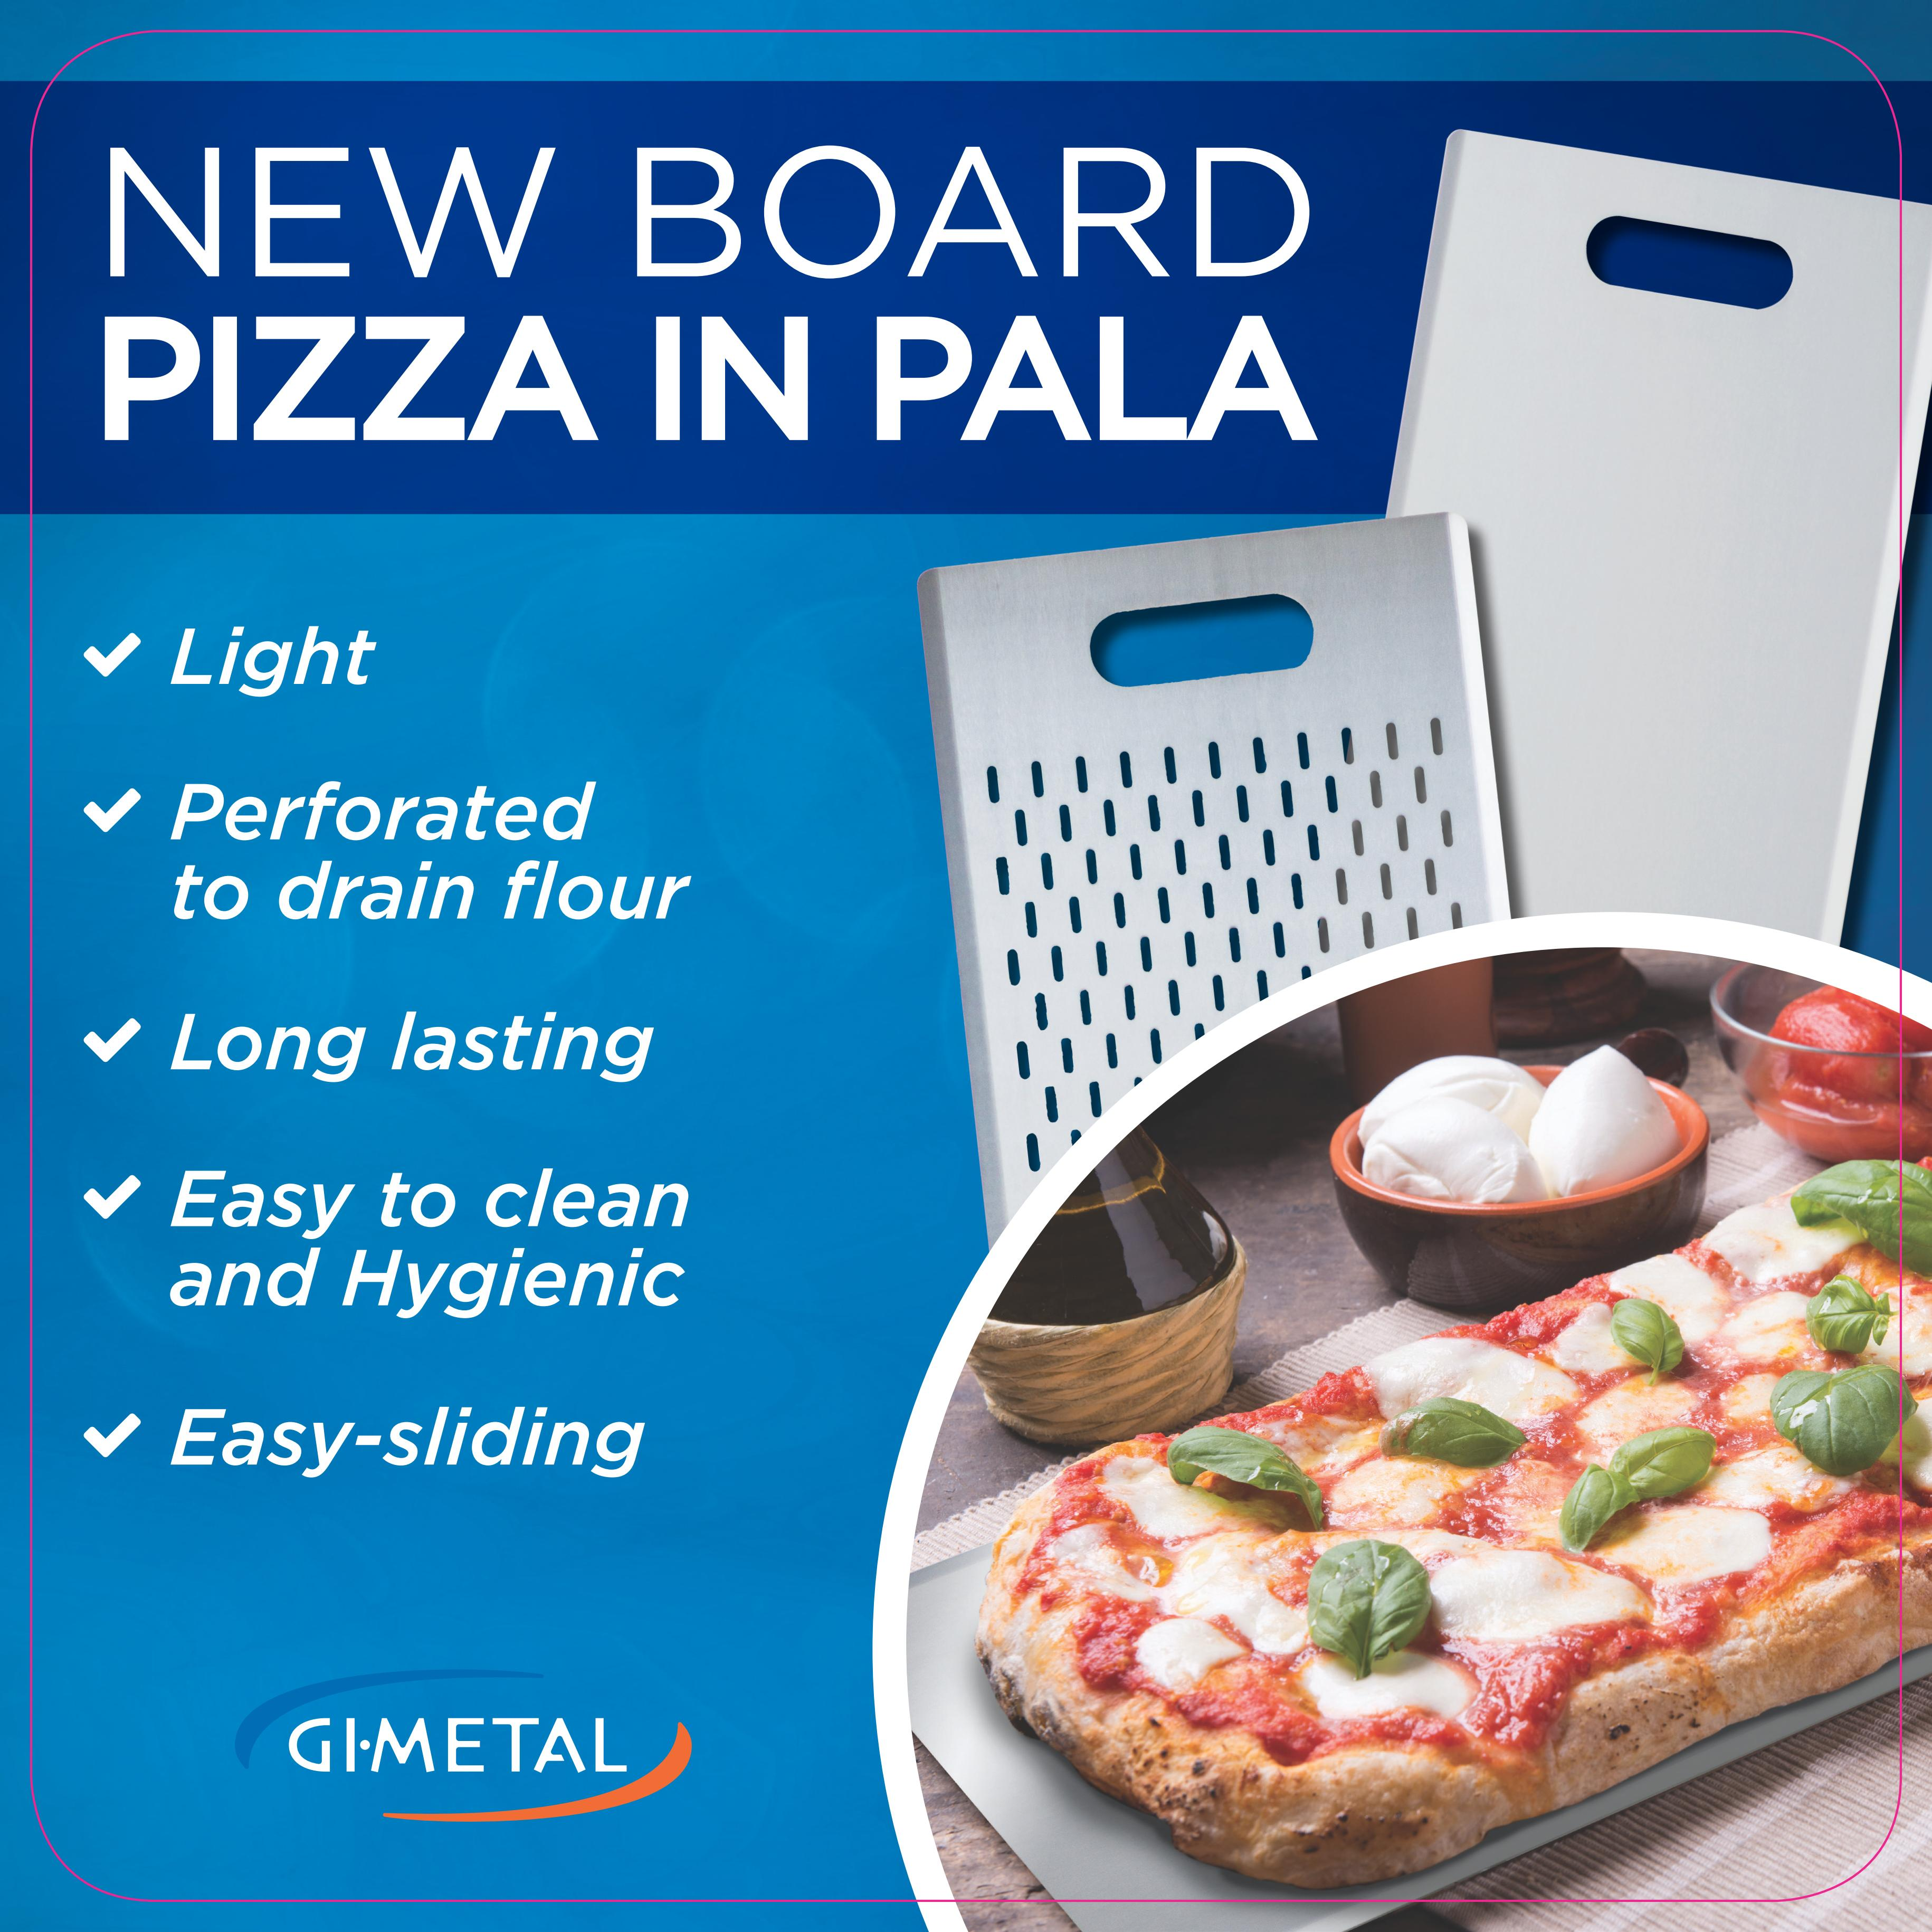 BOARD PIZZA IN PALA